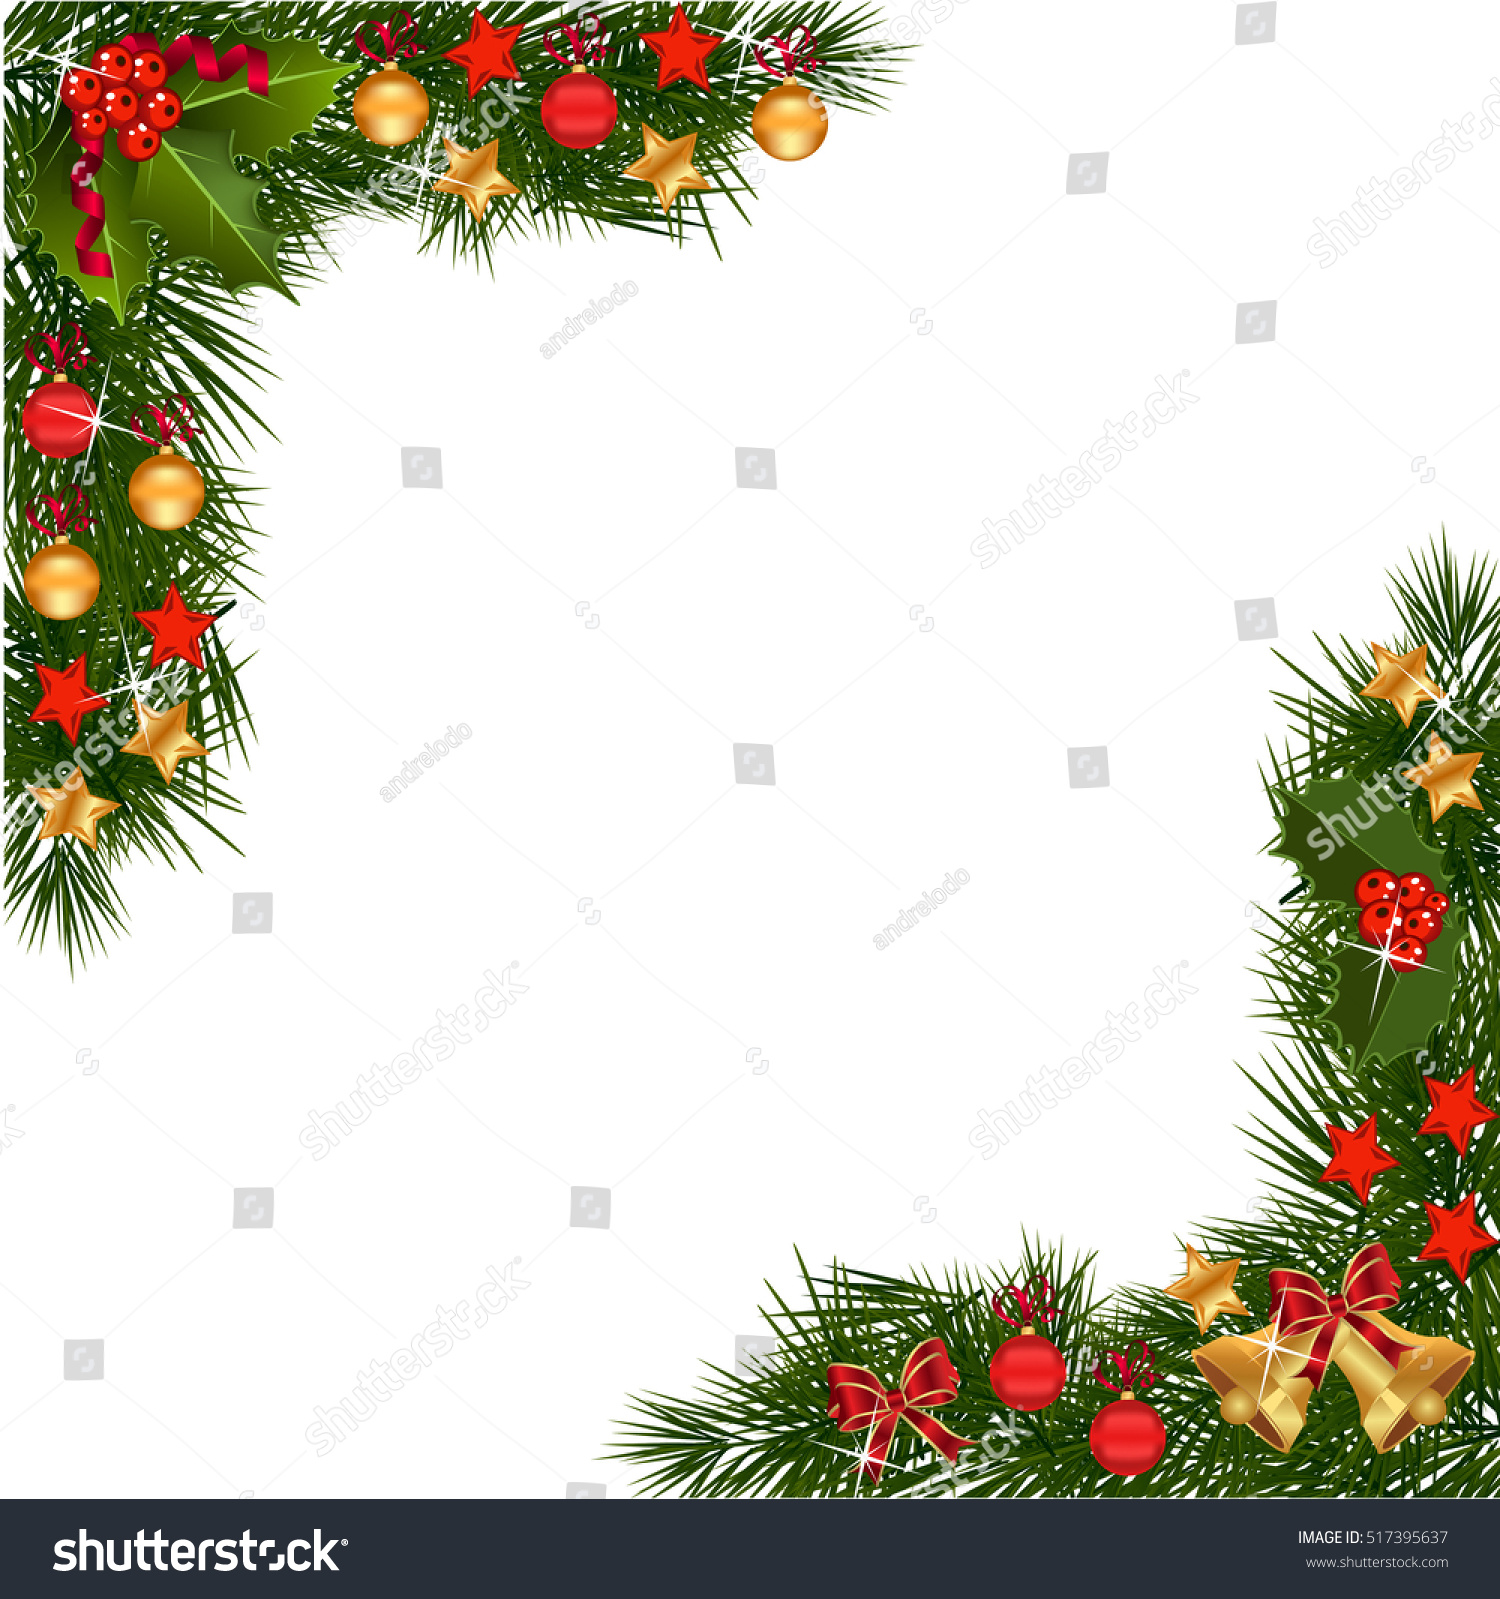 Why is holly a traditional christmas decoration - A Traditional Christmas Garland Made With Red Berries And Decorations On A White Background Festive